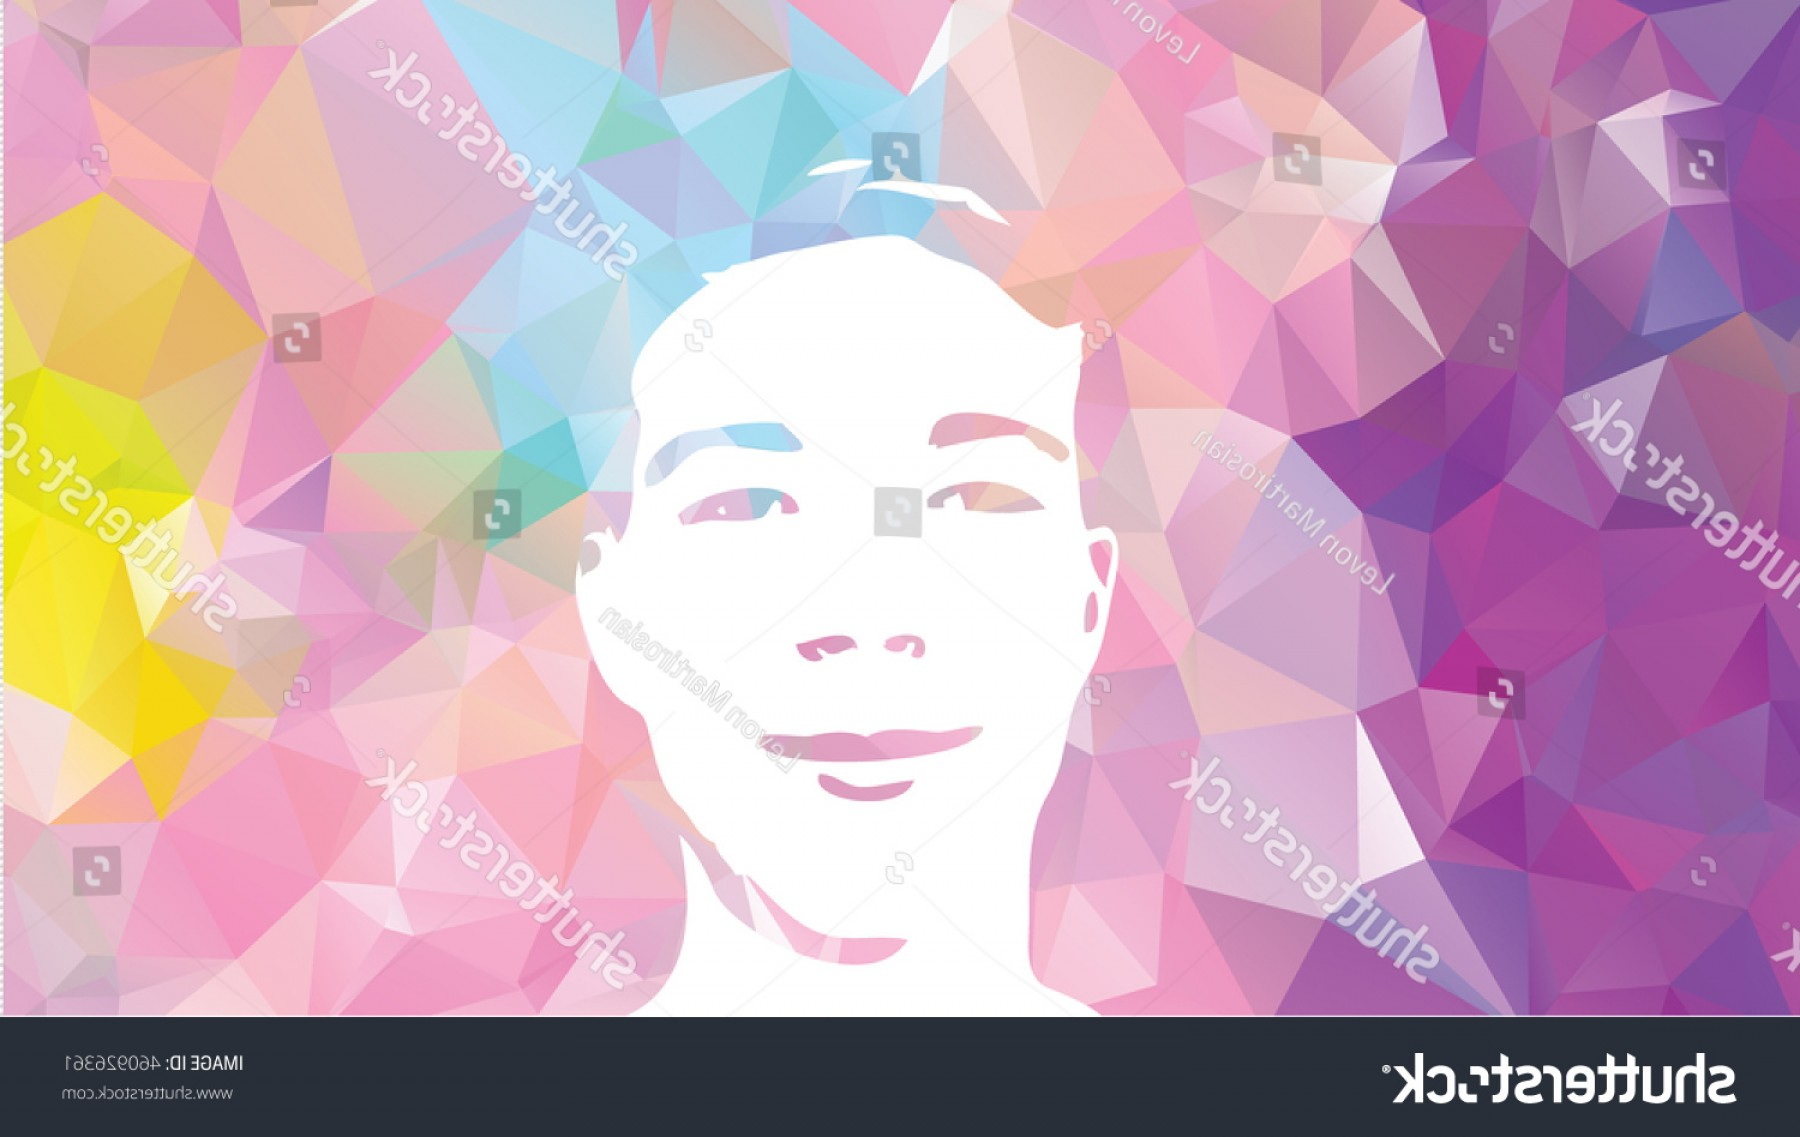 Airbrush Stencil Art Vector: Low Poly Graffiti Stencil Face Vector